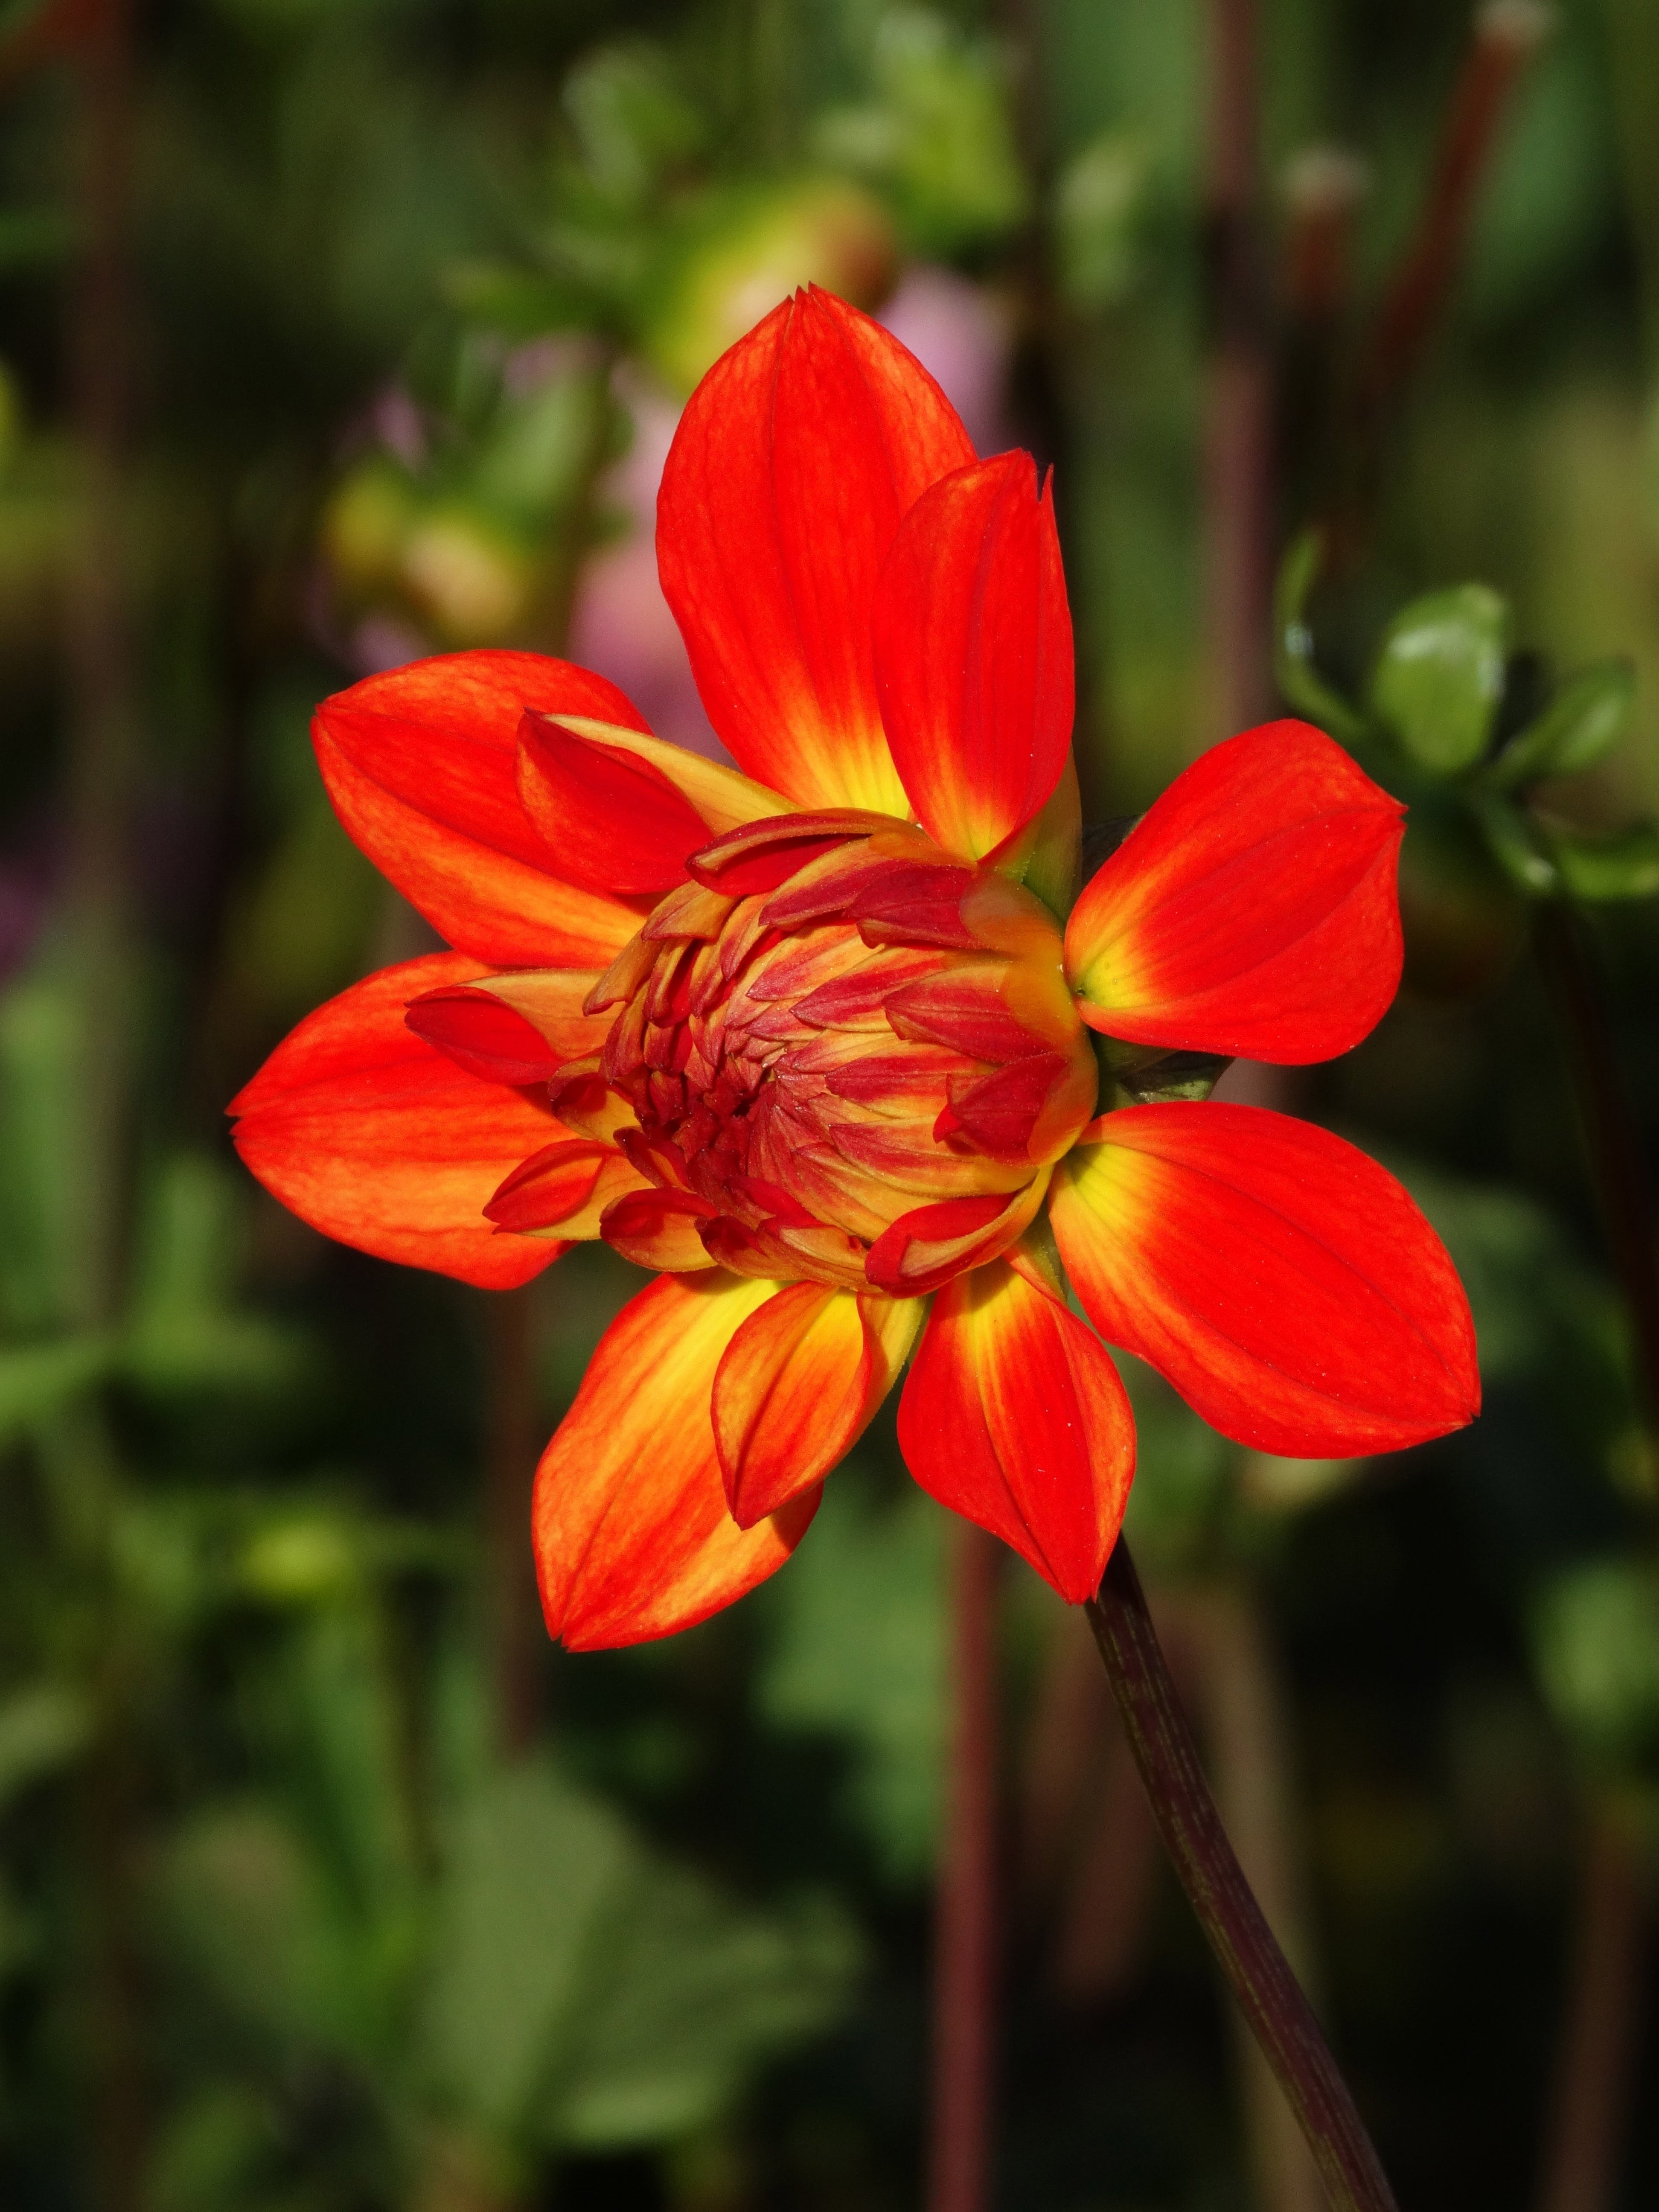 Selective Focus Photography of Red Dahlia Flower in Bloom